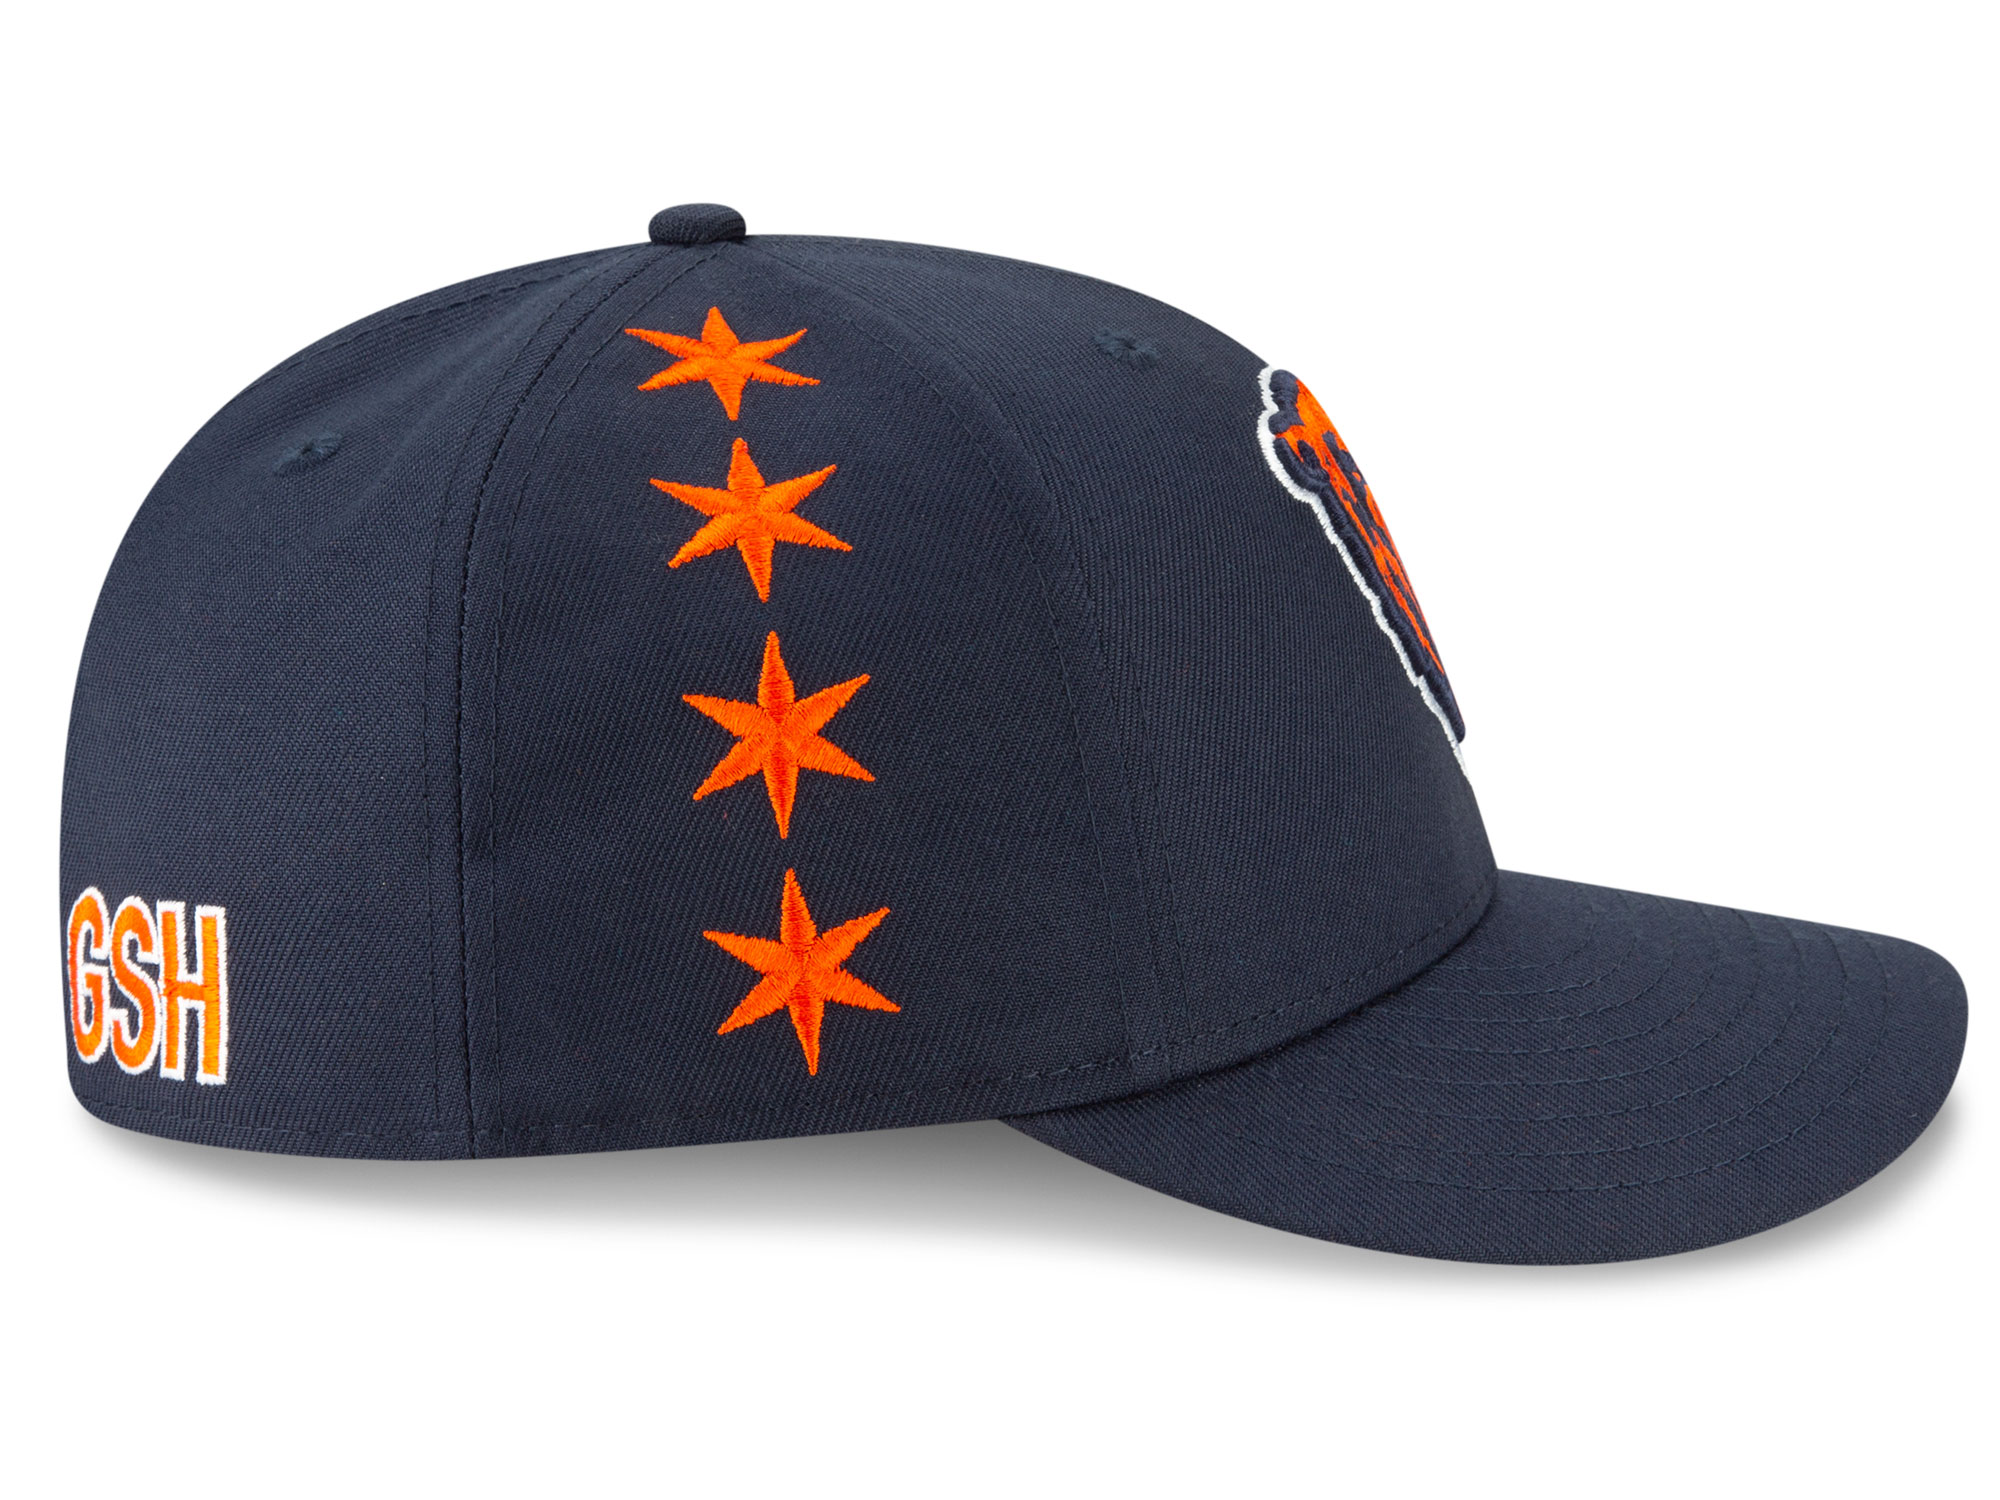 outlet store fd348 c90c1 The Chicago city flag may be the most well-known city flag in all of  America. The four six-pointed stars run up the right side of the hat.